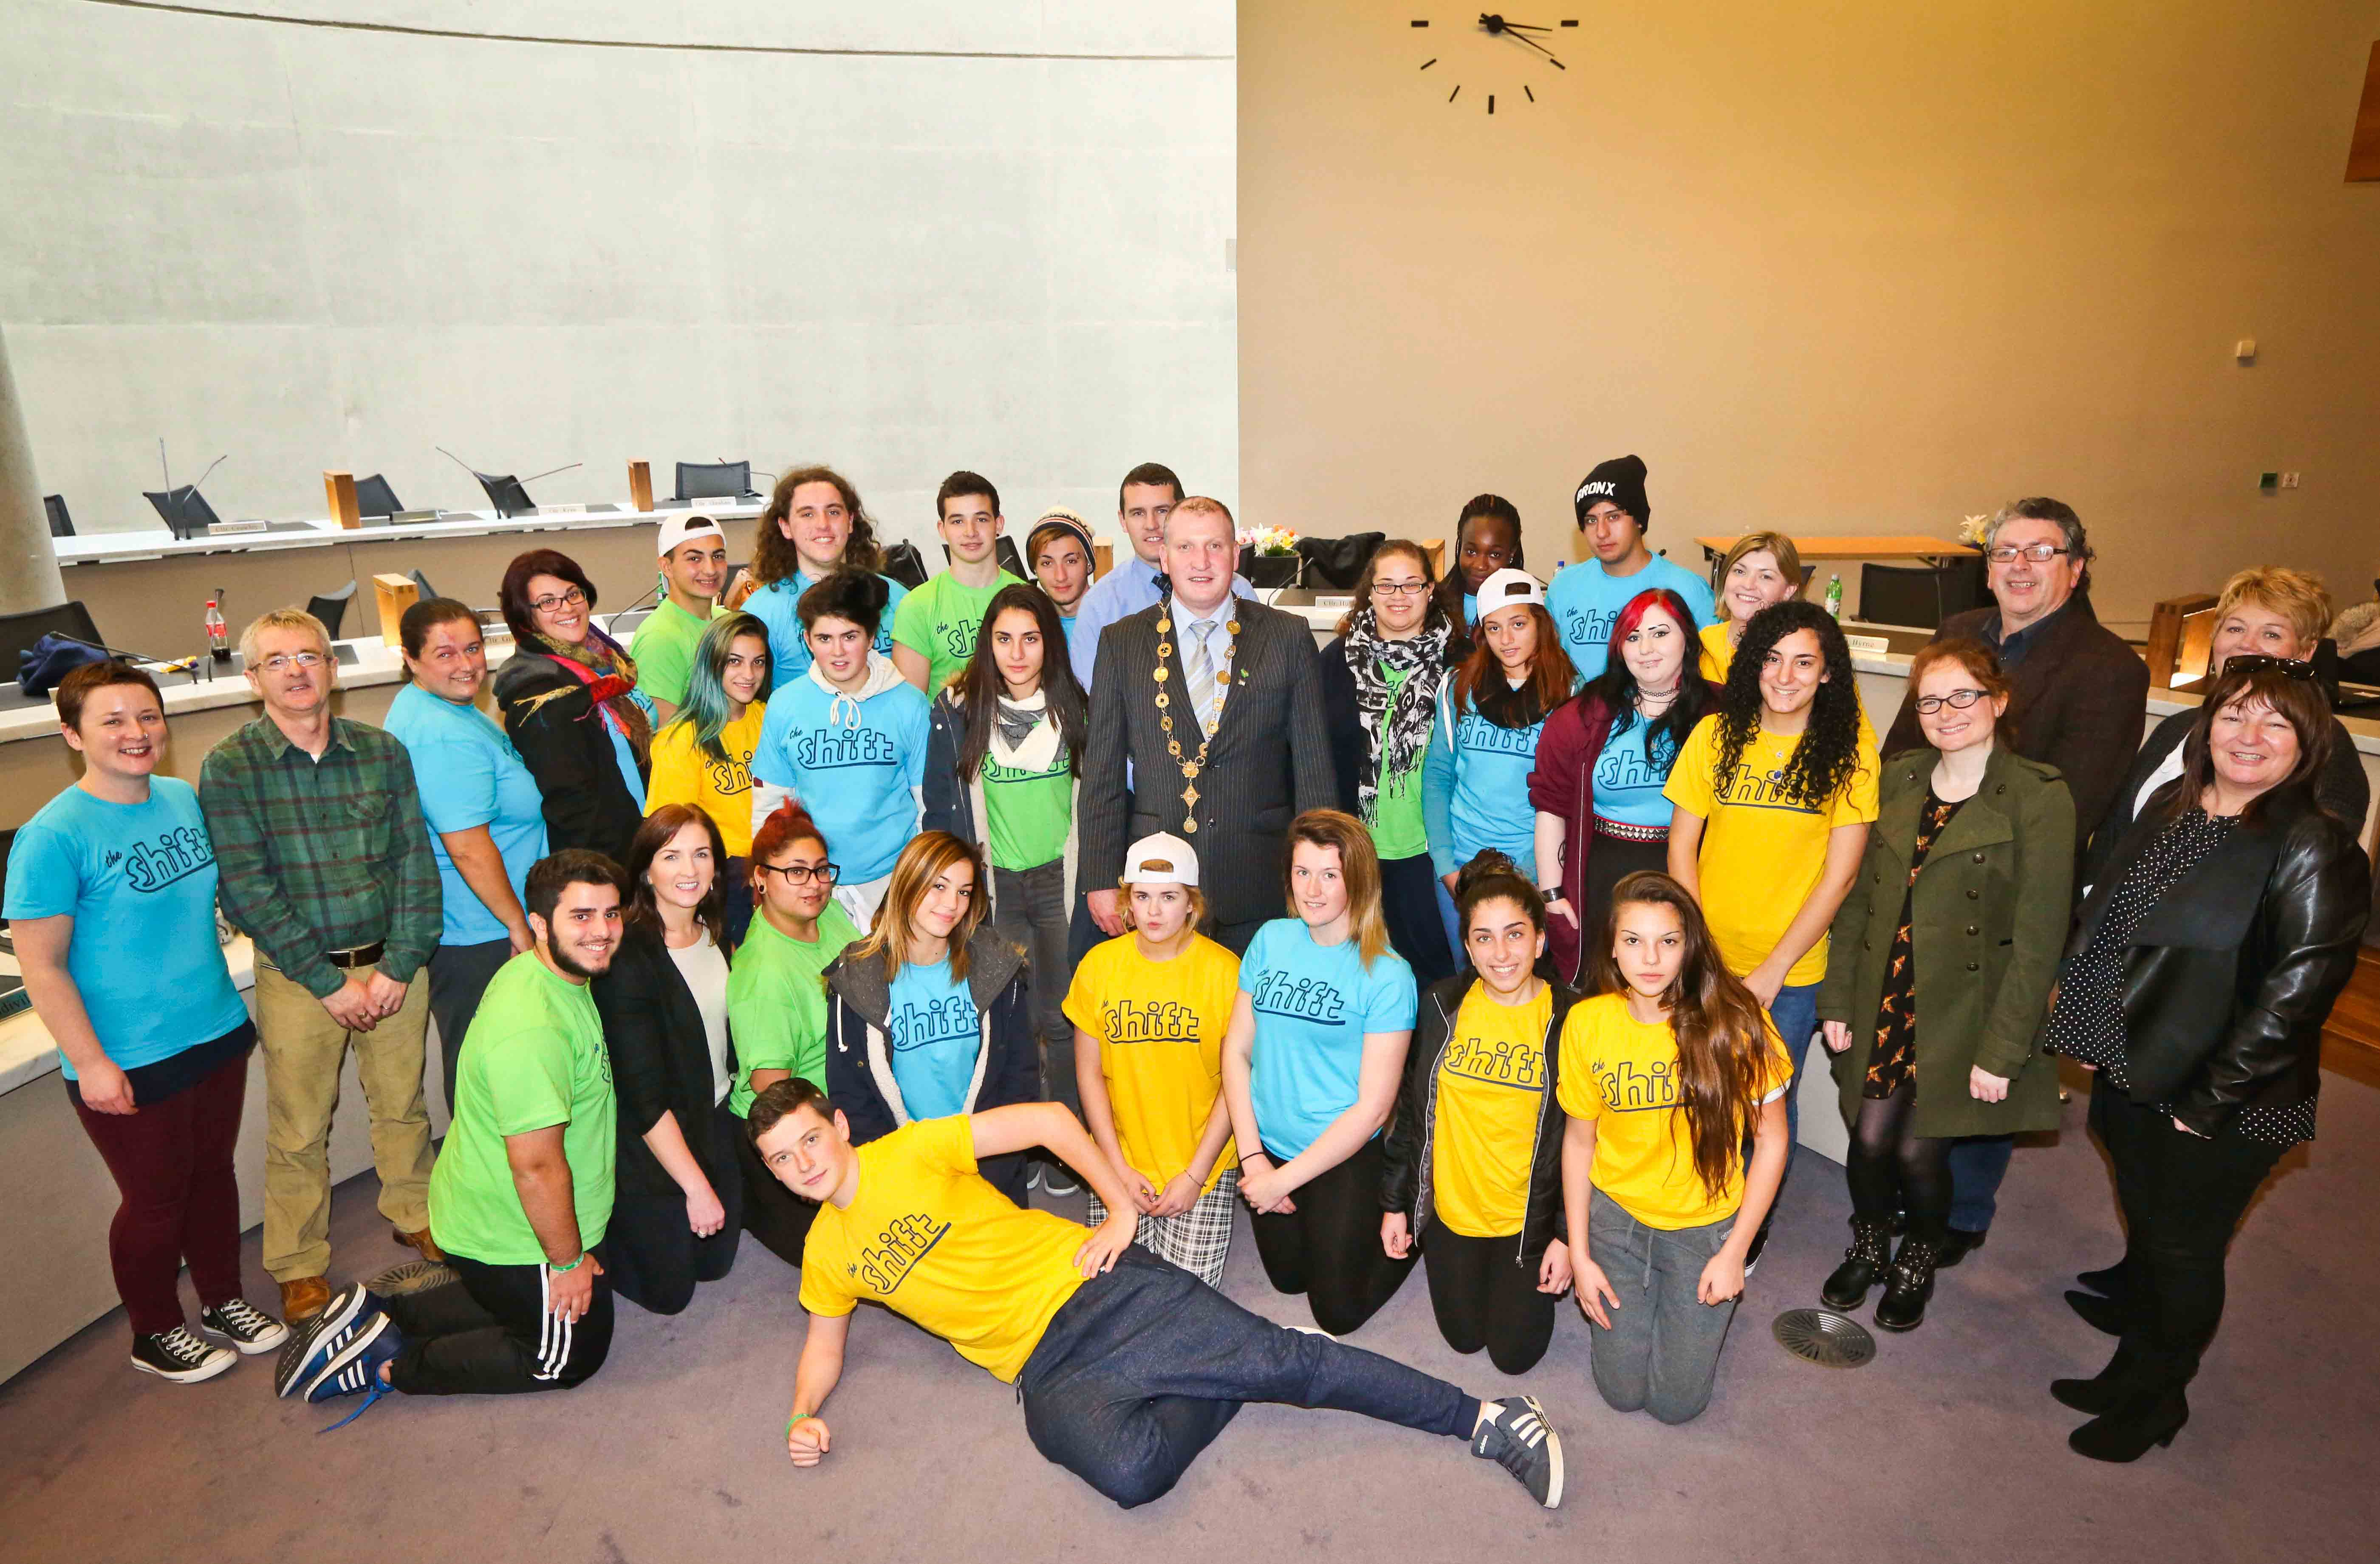 The Shift youth programme with Limerick Youth Service